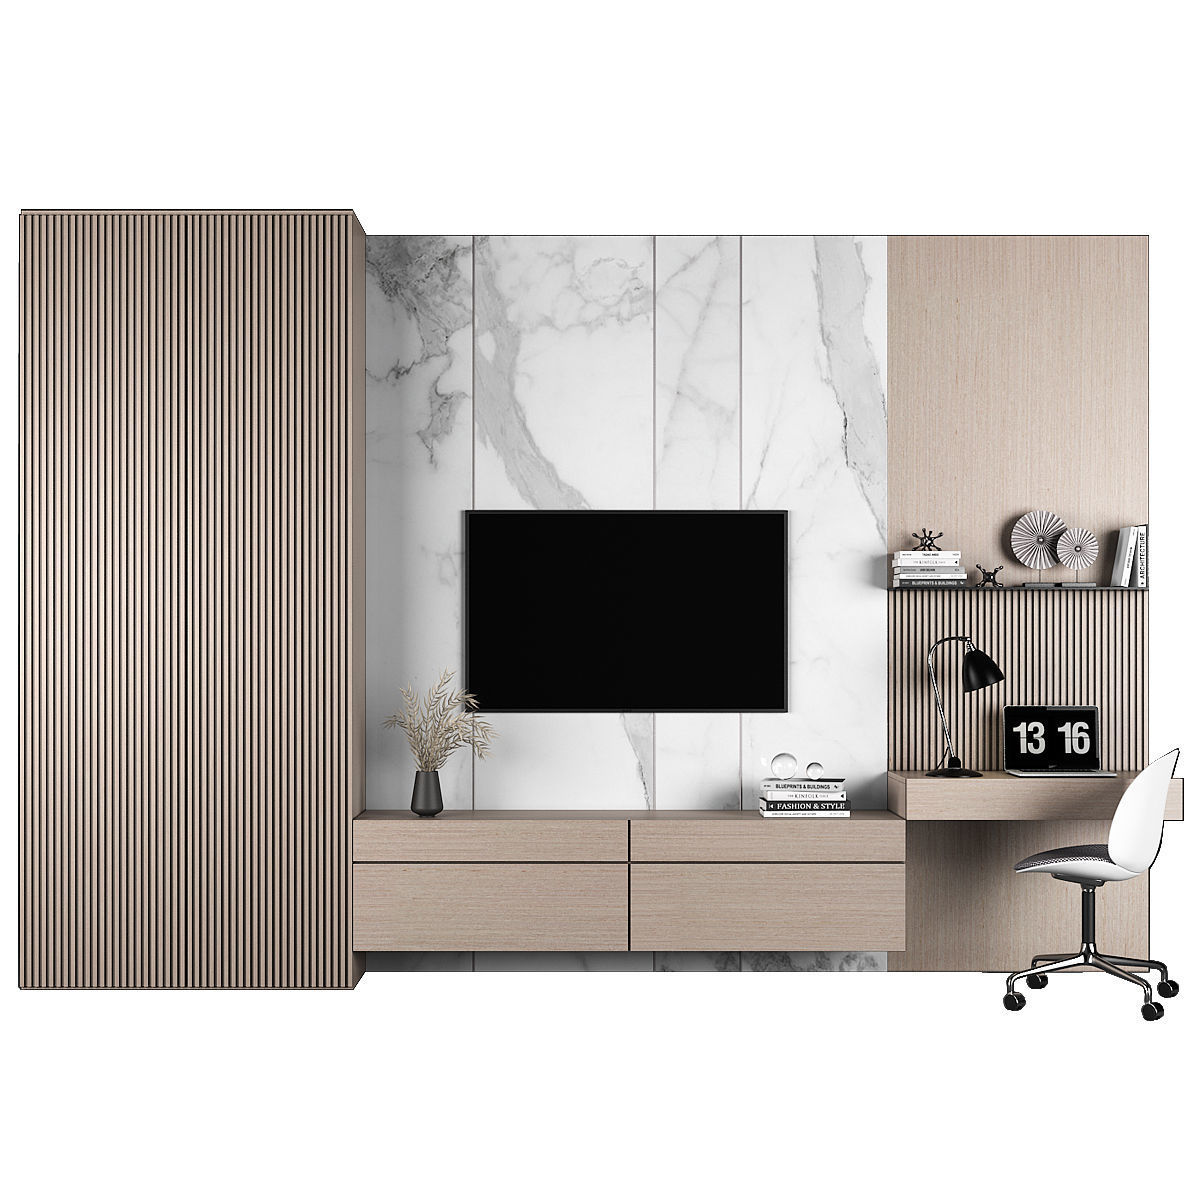 TV stand and workplace